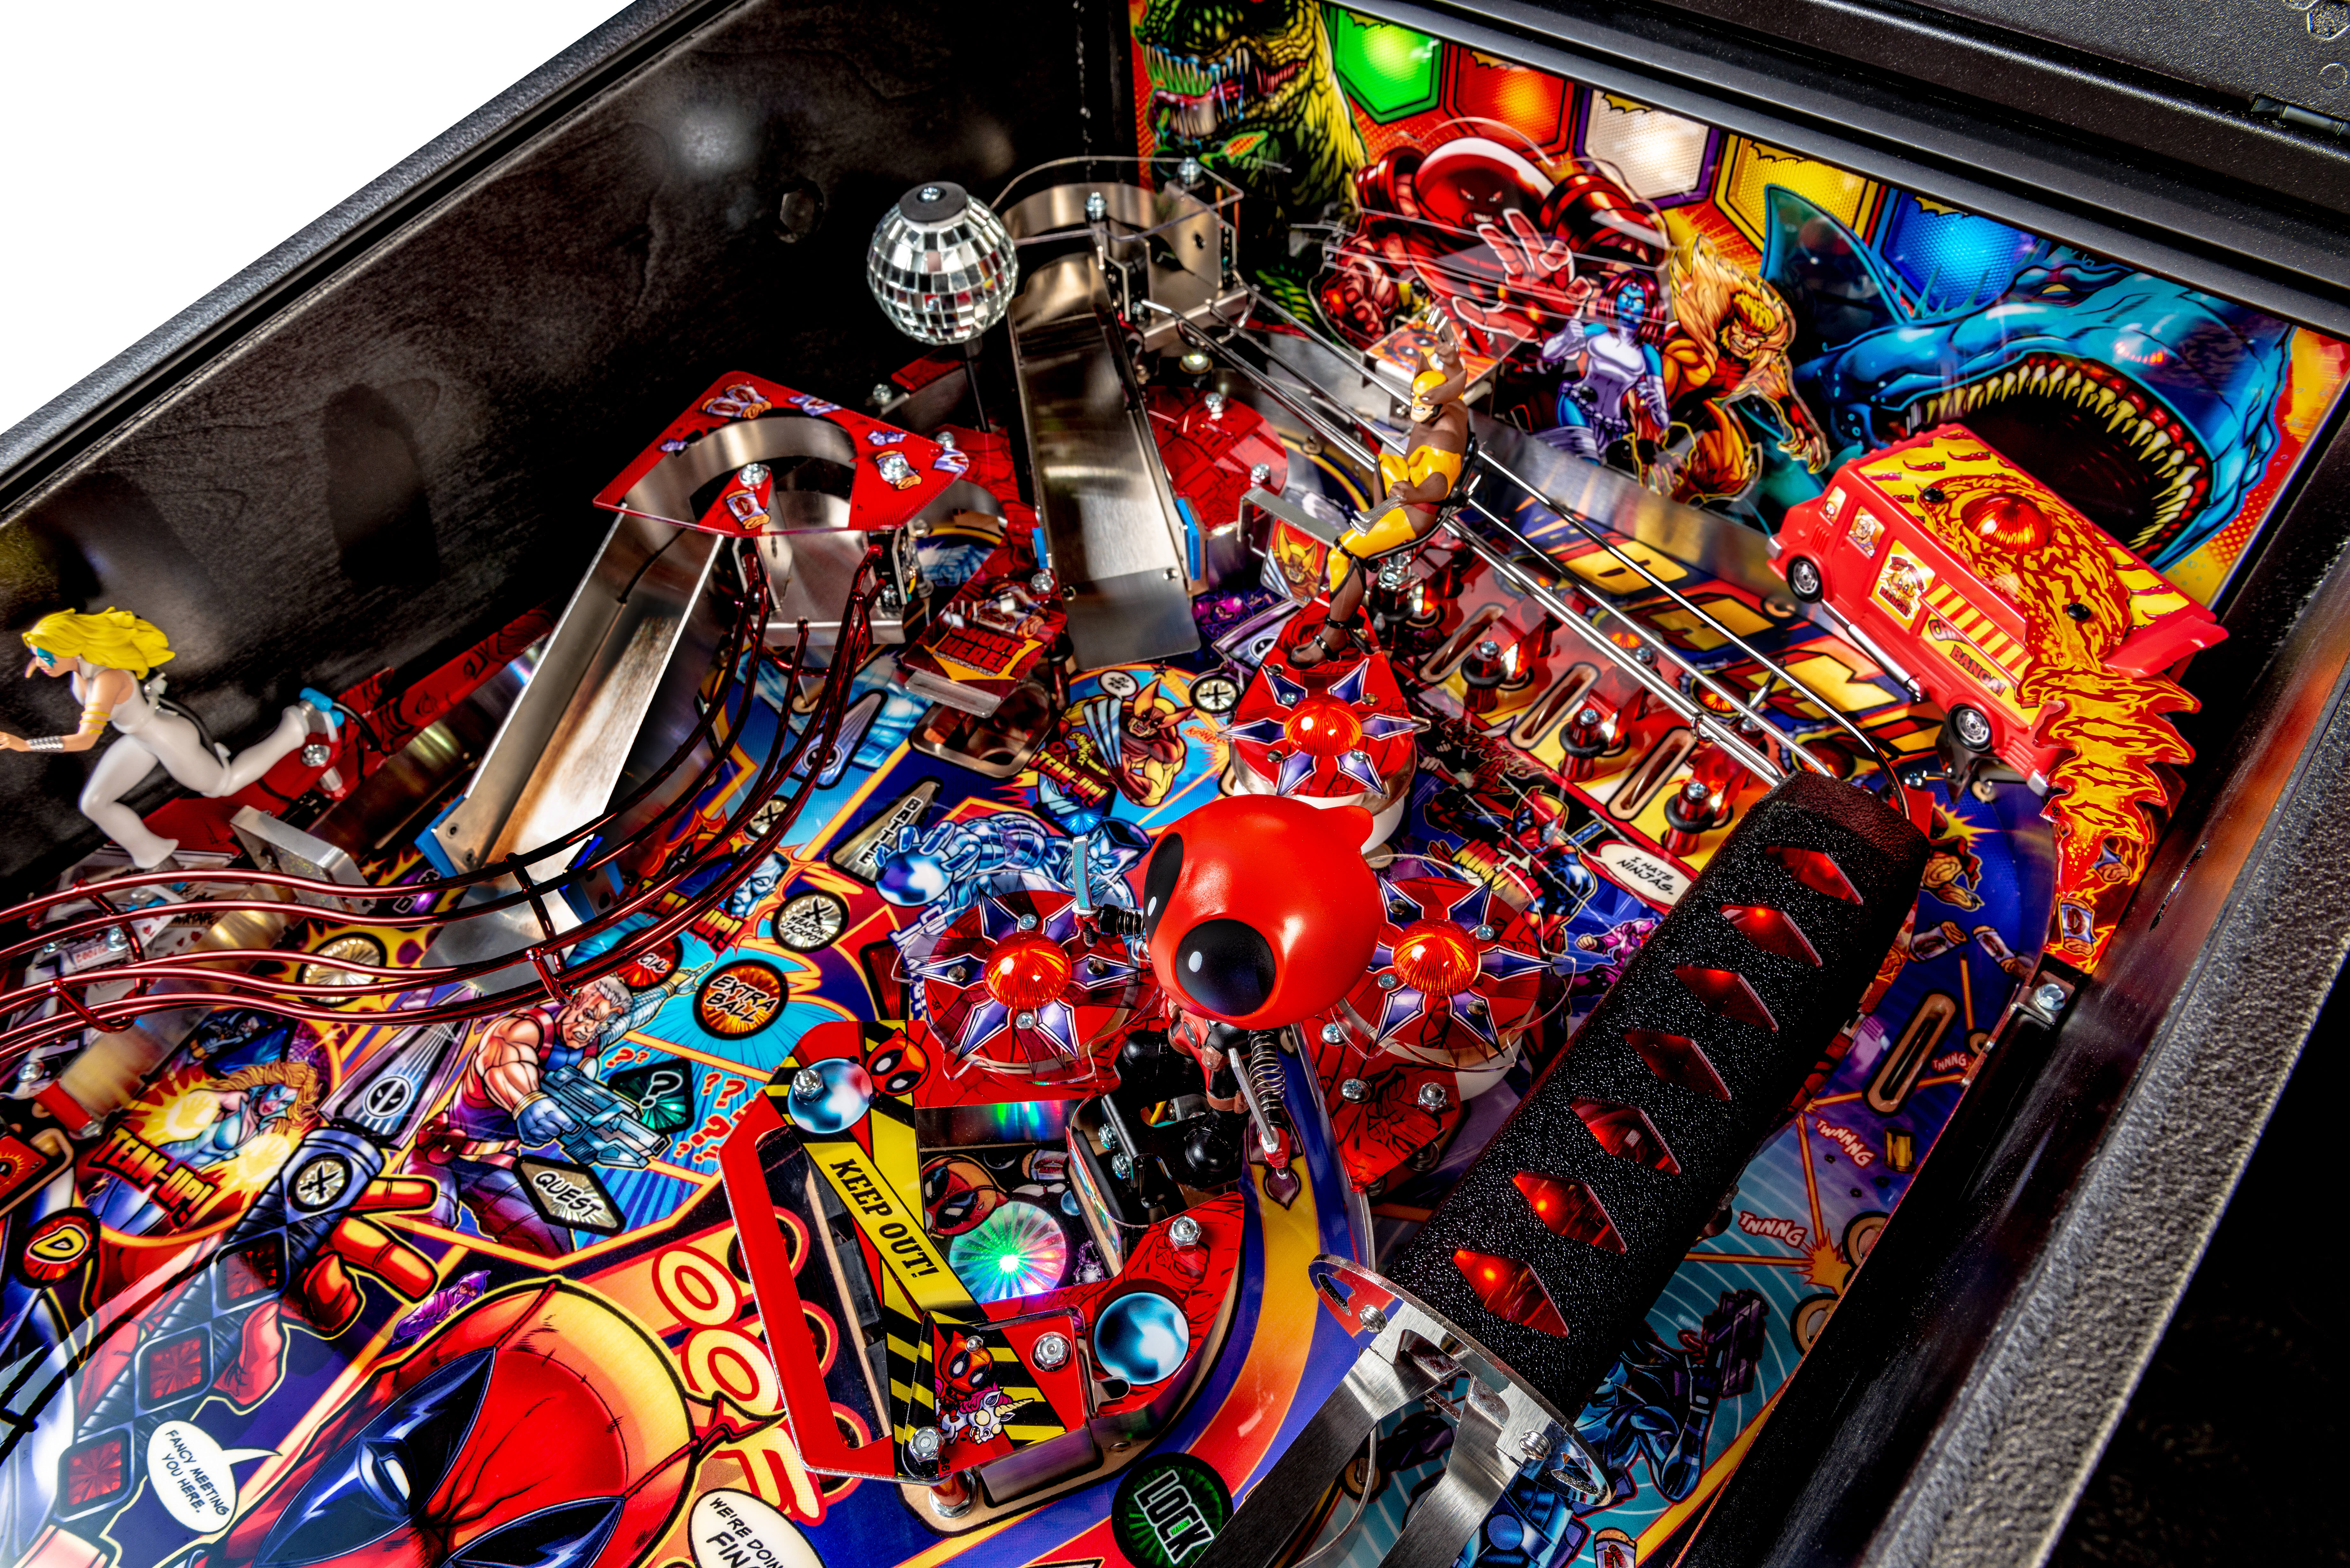 Star Wars Pinball Machine >> Buy Deadpool Premium Pinball Machine by Stern Online at $7599